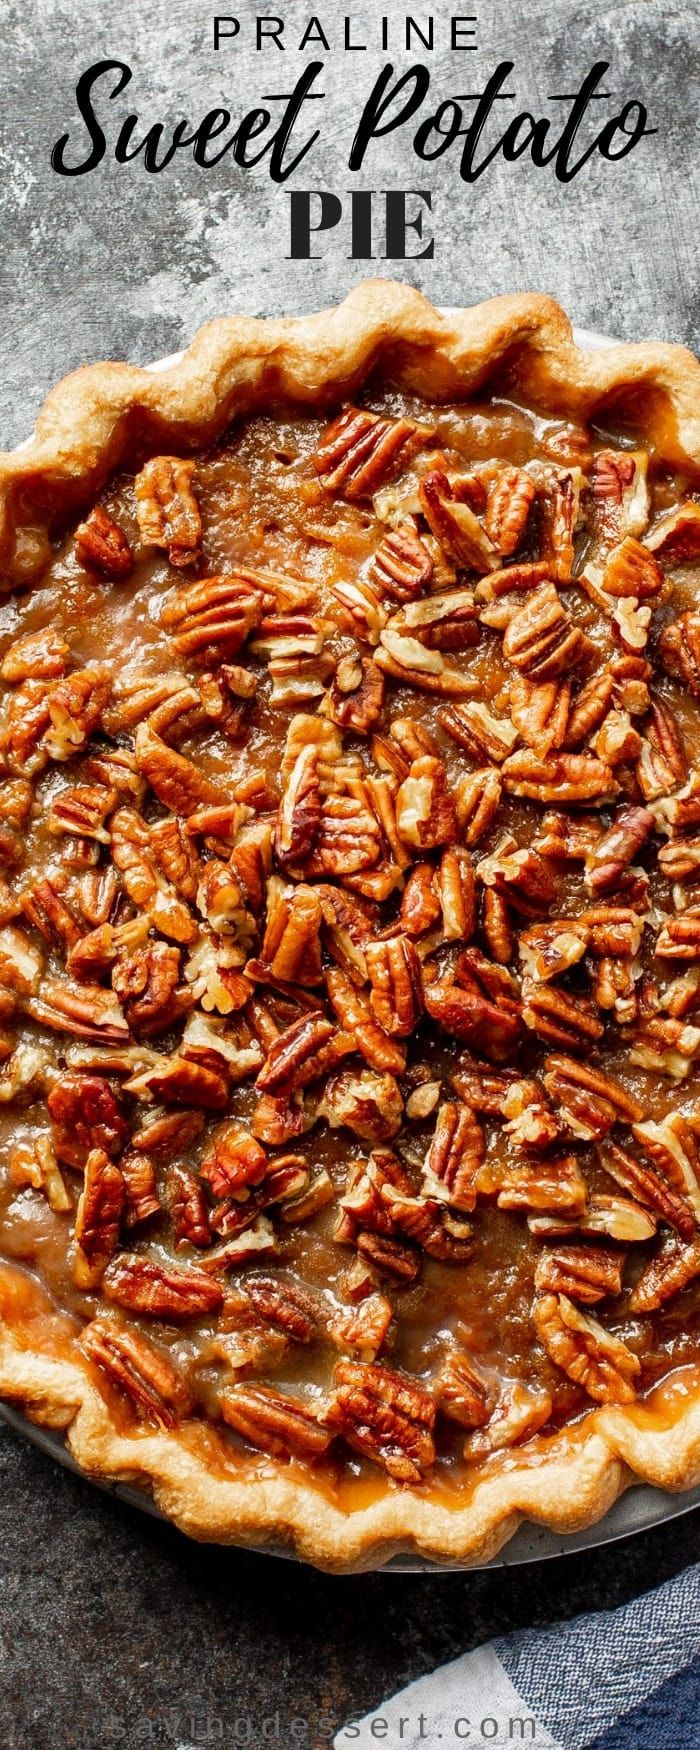 Praline Sweet Potato Pie Recipe Recipe Sweet Potato Pies Recipes Sweet Potato Pie Sweet Potato Pecan Pie